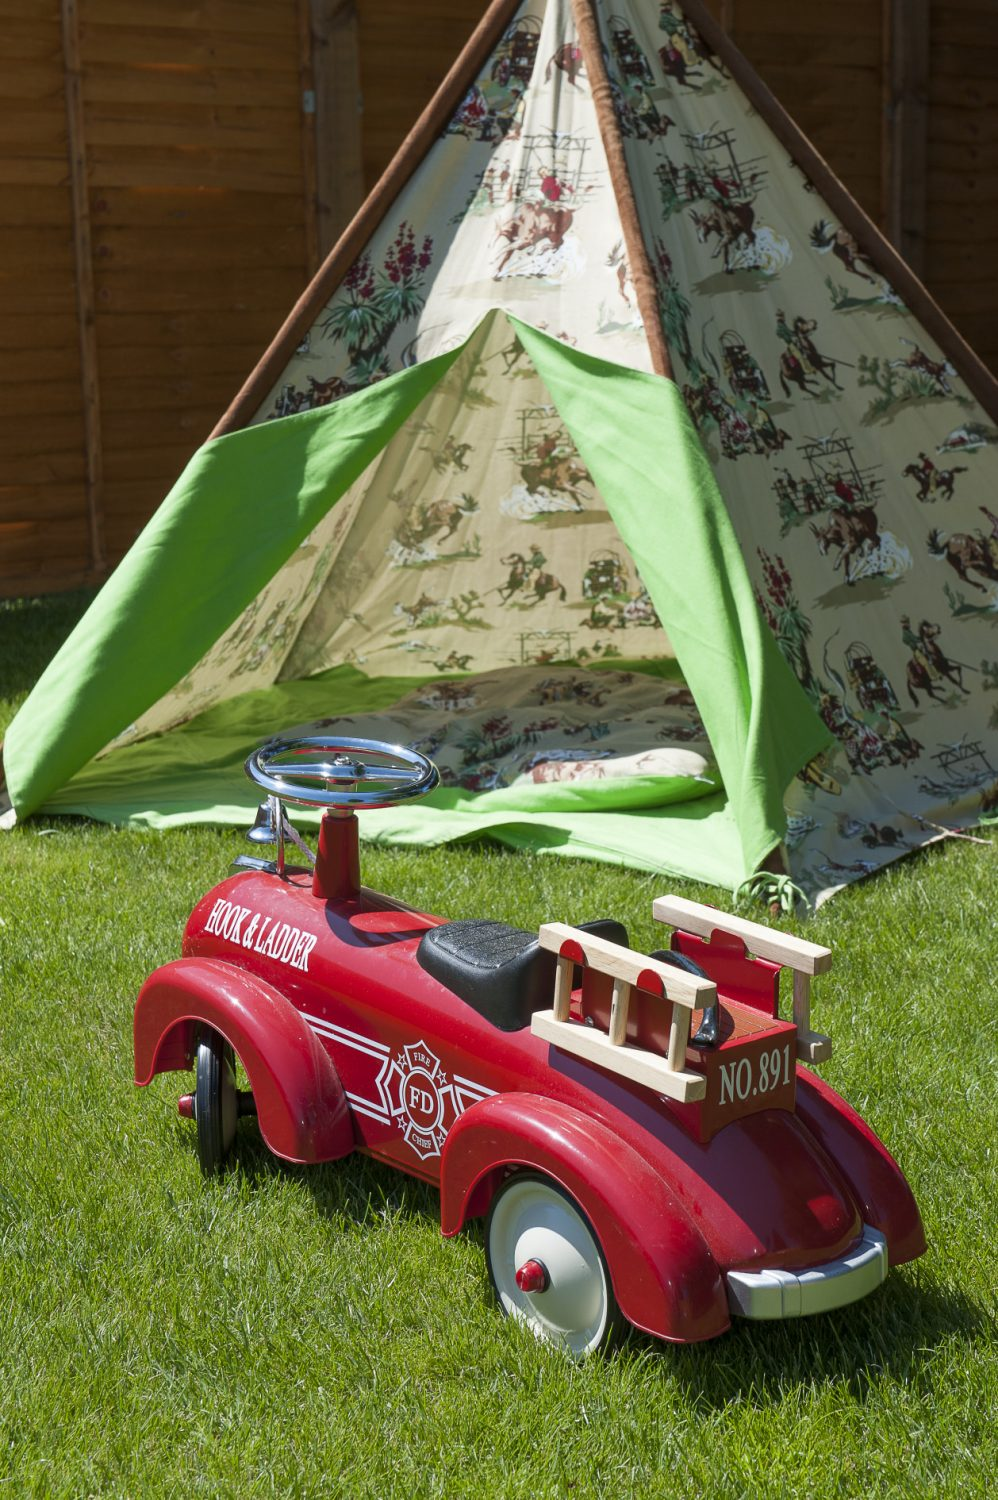 The fire truck was Charlie's first birthday present and the family brought it back from Australia, along with his cowboy print tipi by Mocka